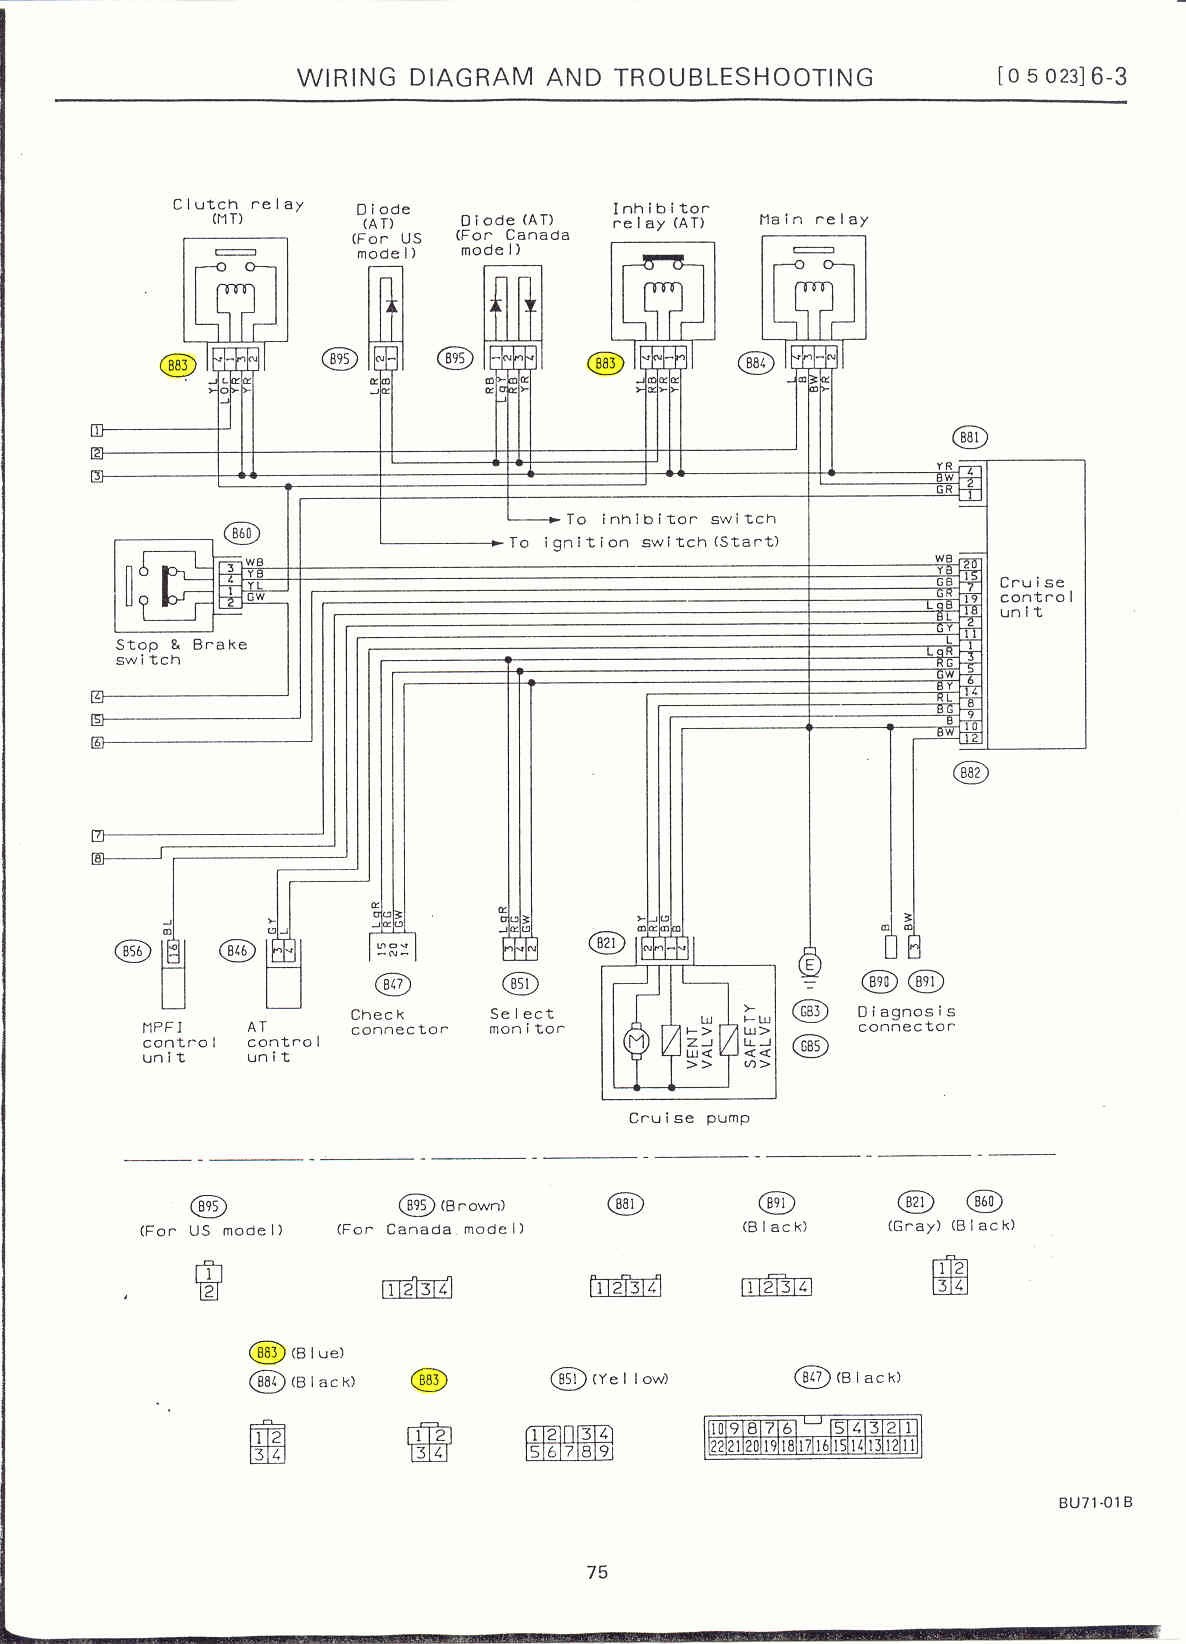 1994 subaru legacy wiring diagram introduction to electrical rh wiringdiagramdesign today Subaru Legacy Transmission Wiring-Diagram Subaru Legacy 96 Power Window Wiring Diagram